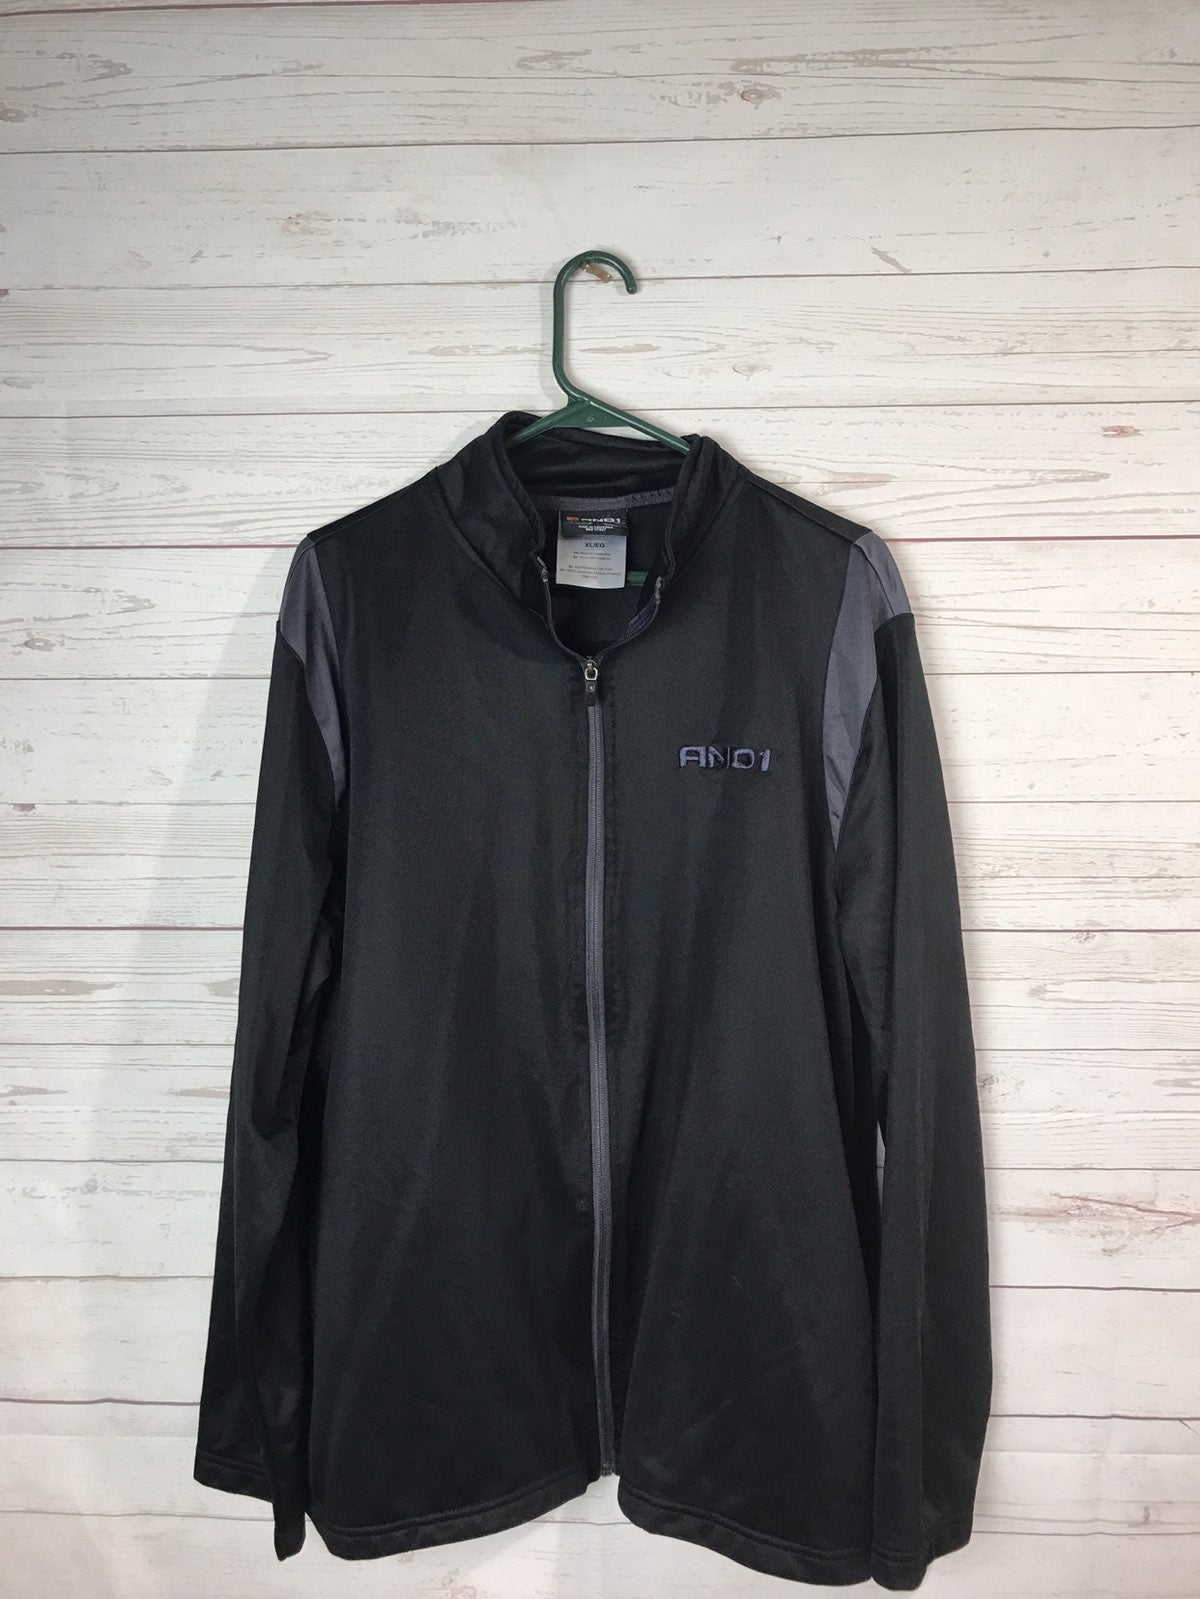 AND1 Full Zip Track Men's XL